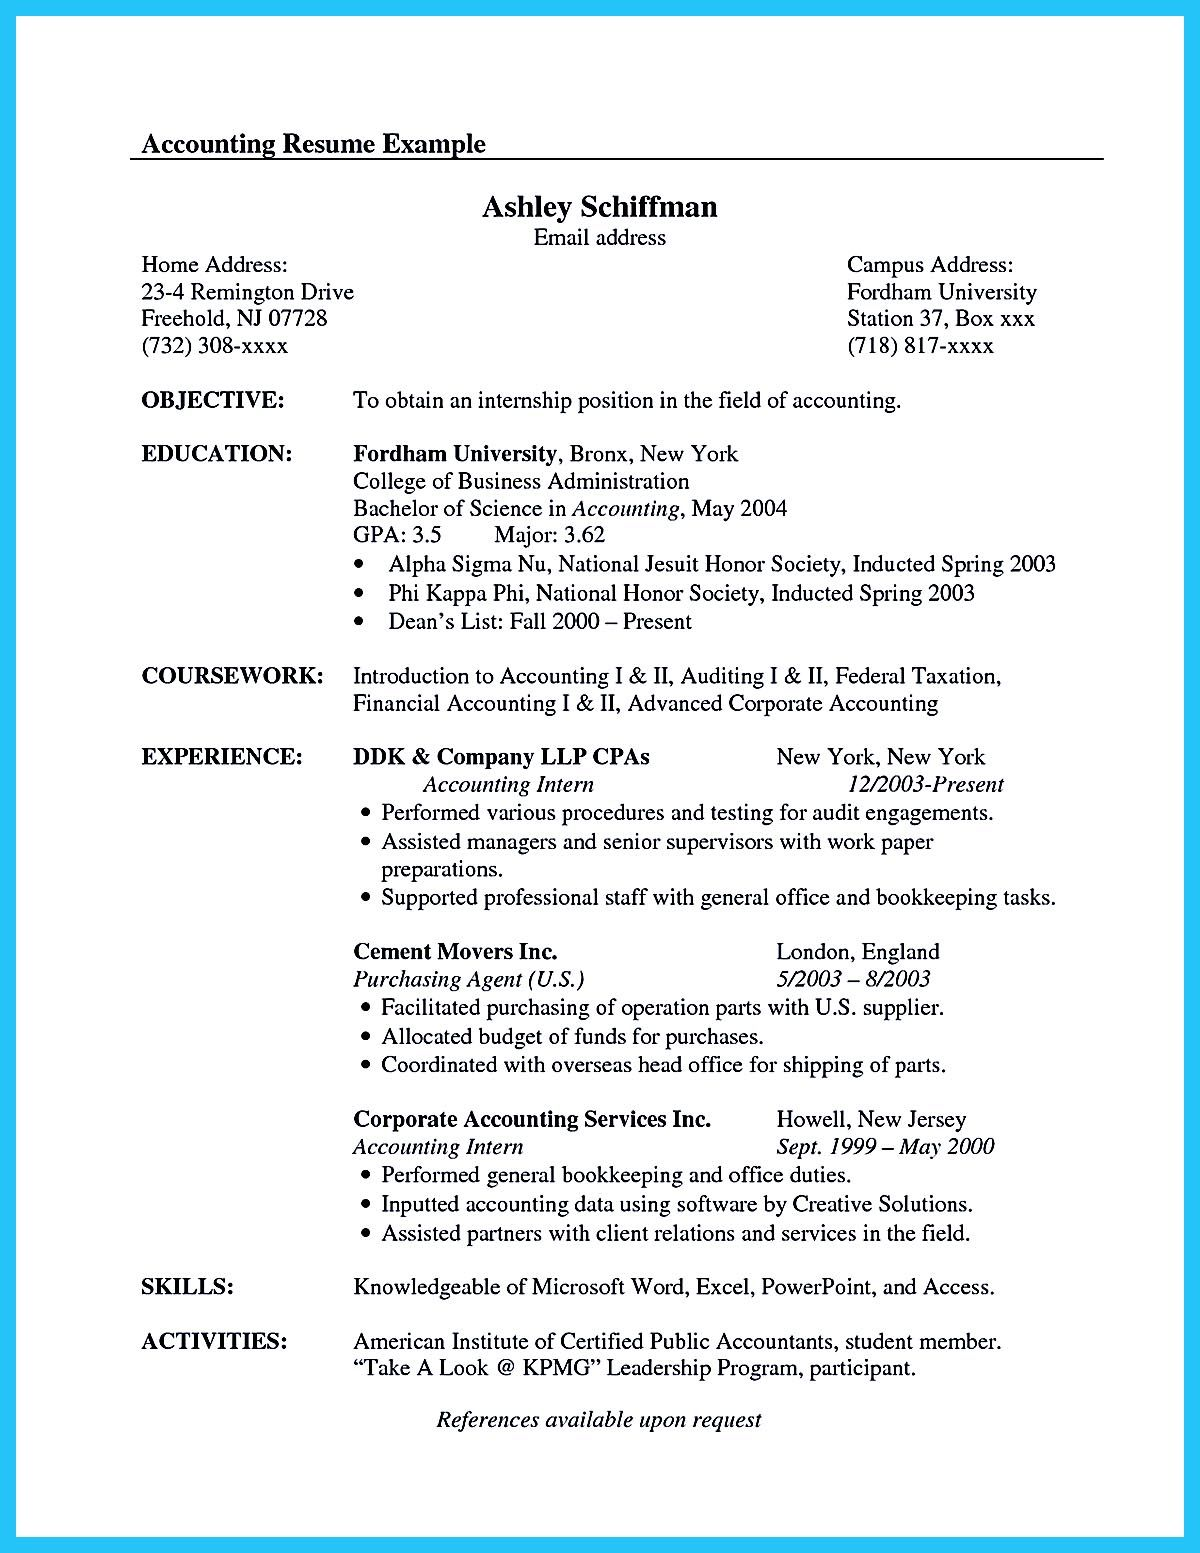 Professional Accounting Resume Templates Accounting Student Resume Here Presents How The Resume Of